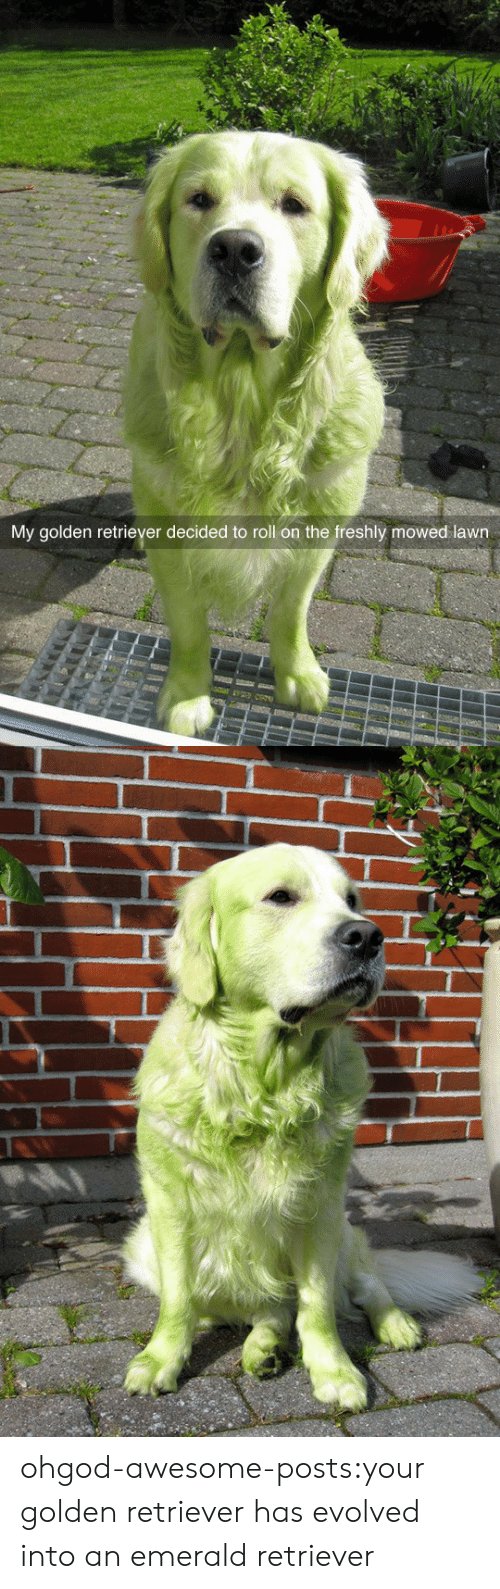 Golden Retriever: My golden retriever decided to roll on the freshly mowed lawn ohgod-awesome-posts:your golden retriever has evolved into an emerald retriever